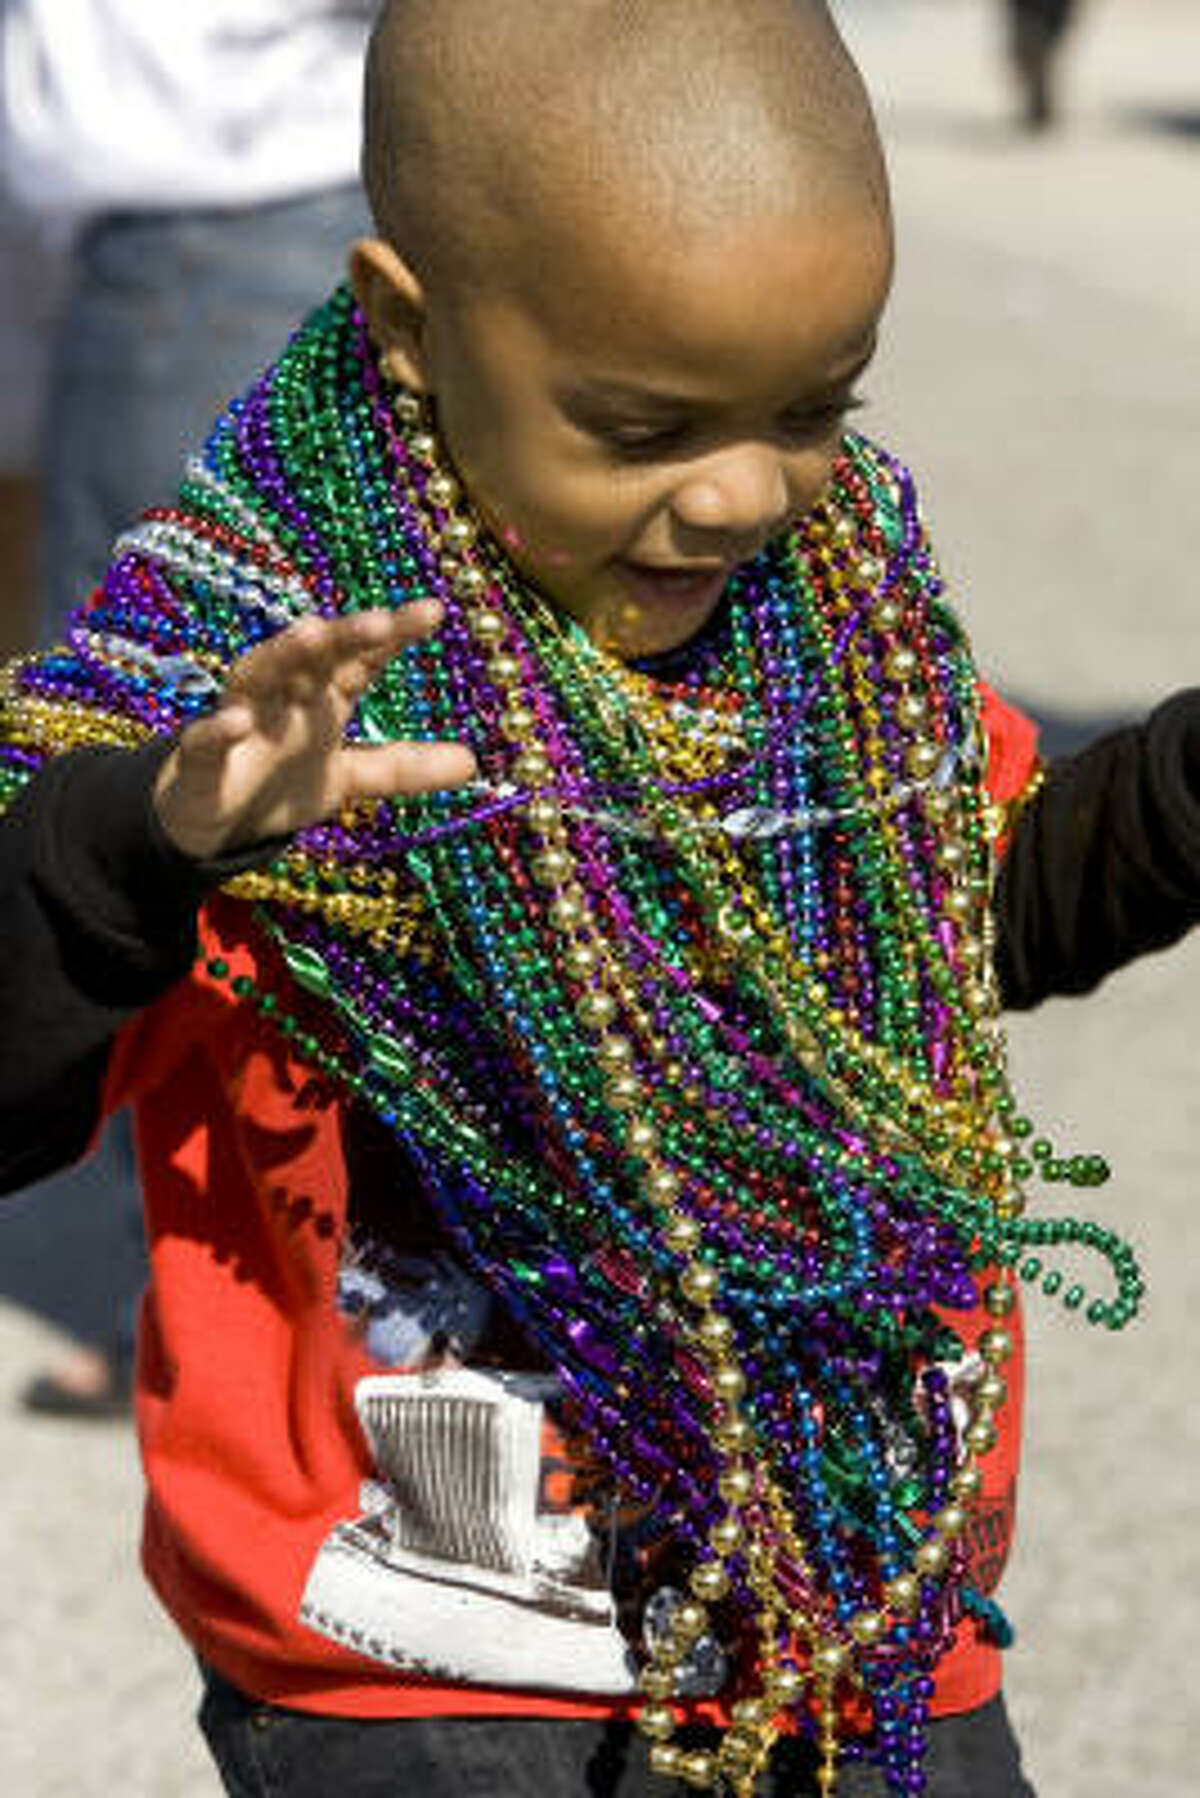 Darron Derouselle, 5, is loaded down with beads as he watches the Childrens' Mardi Gras parade.